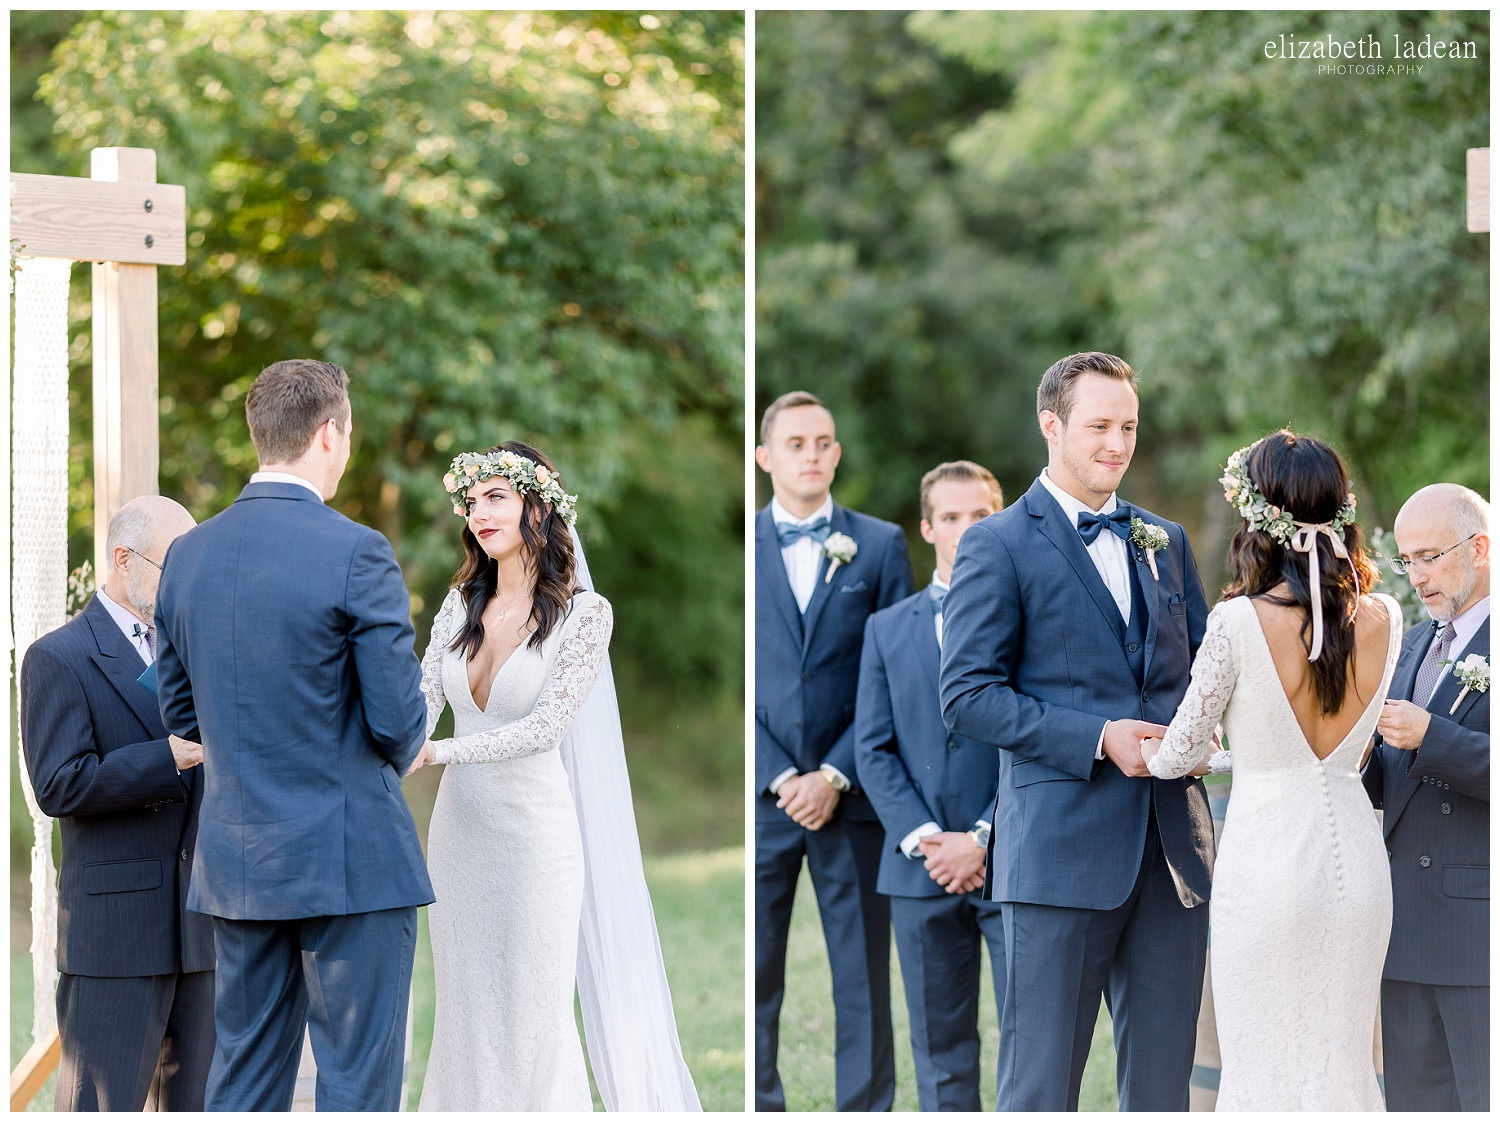 Willow-Creek-Blush-and-Blues-Outdoor-Wedding-Photography-S+Z2018-elizabeth-ladean-photography-photo_0571.jpg